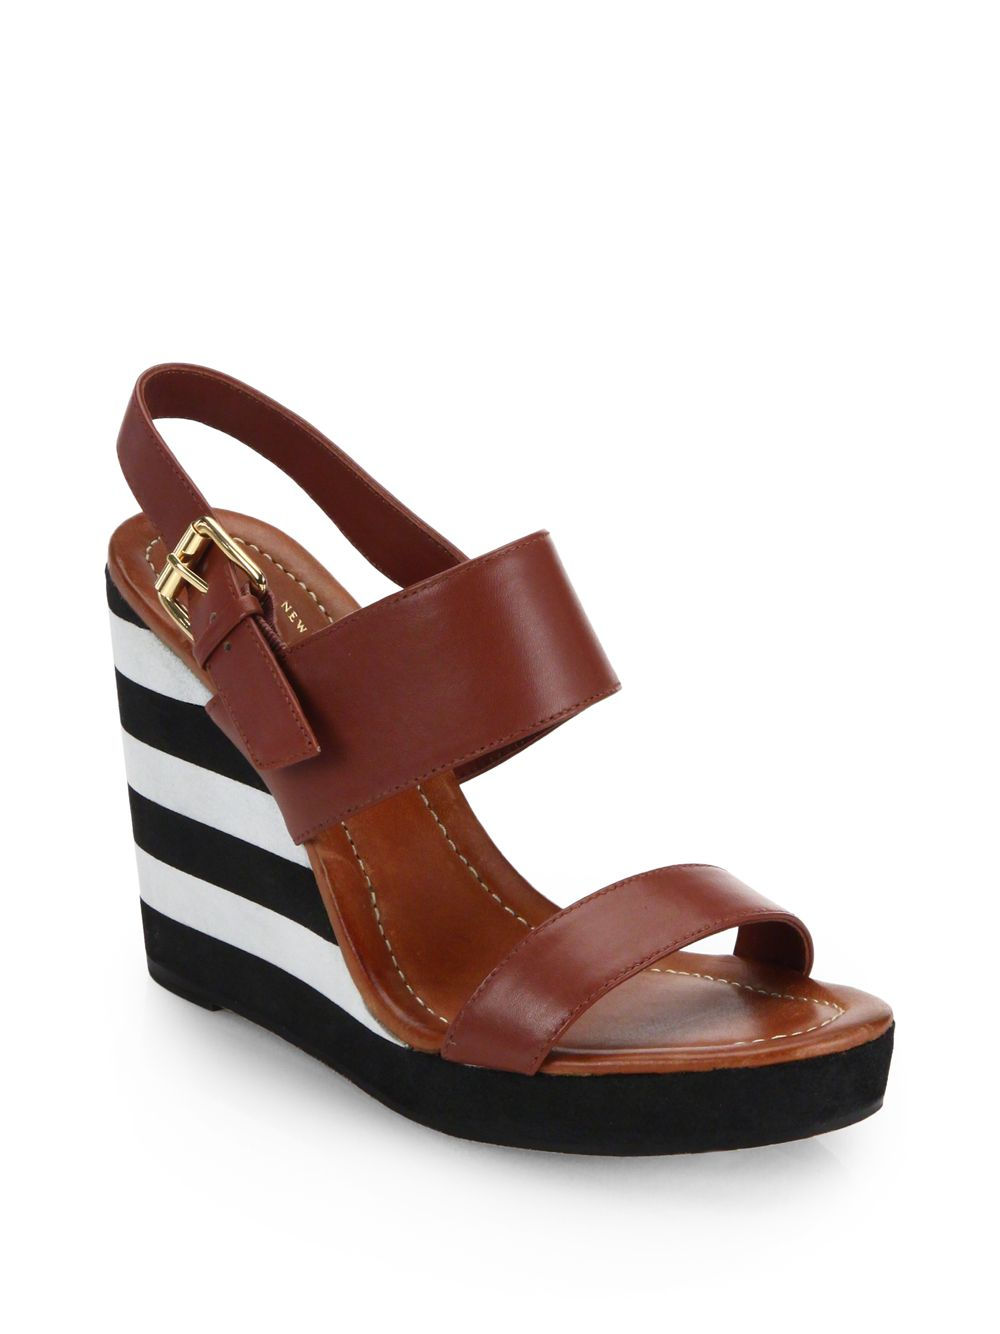 Kate Spade New York Striped Slingback Sandals free shipping find great ZDl6PJcAT